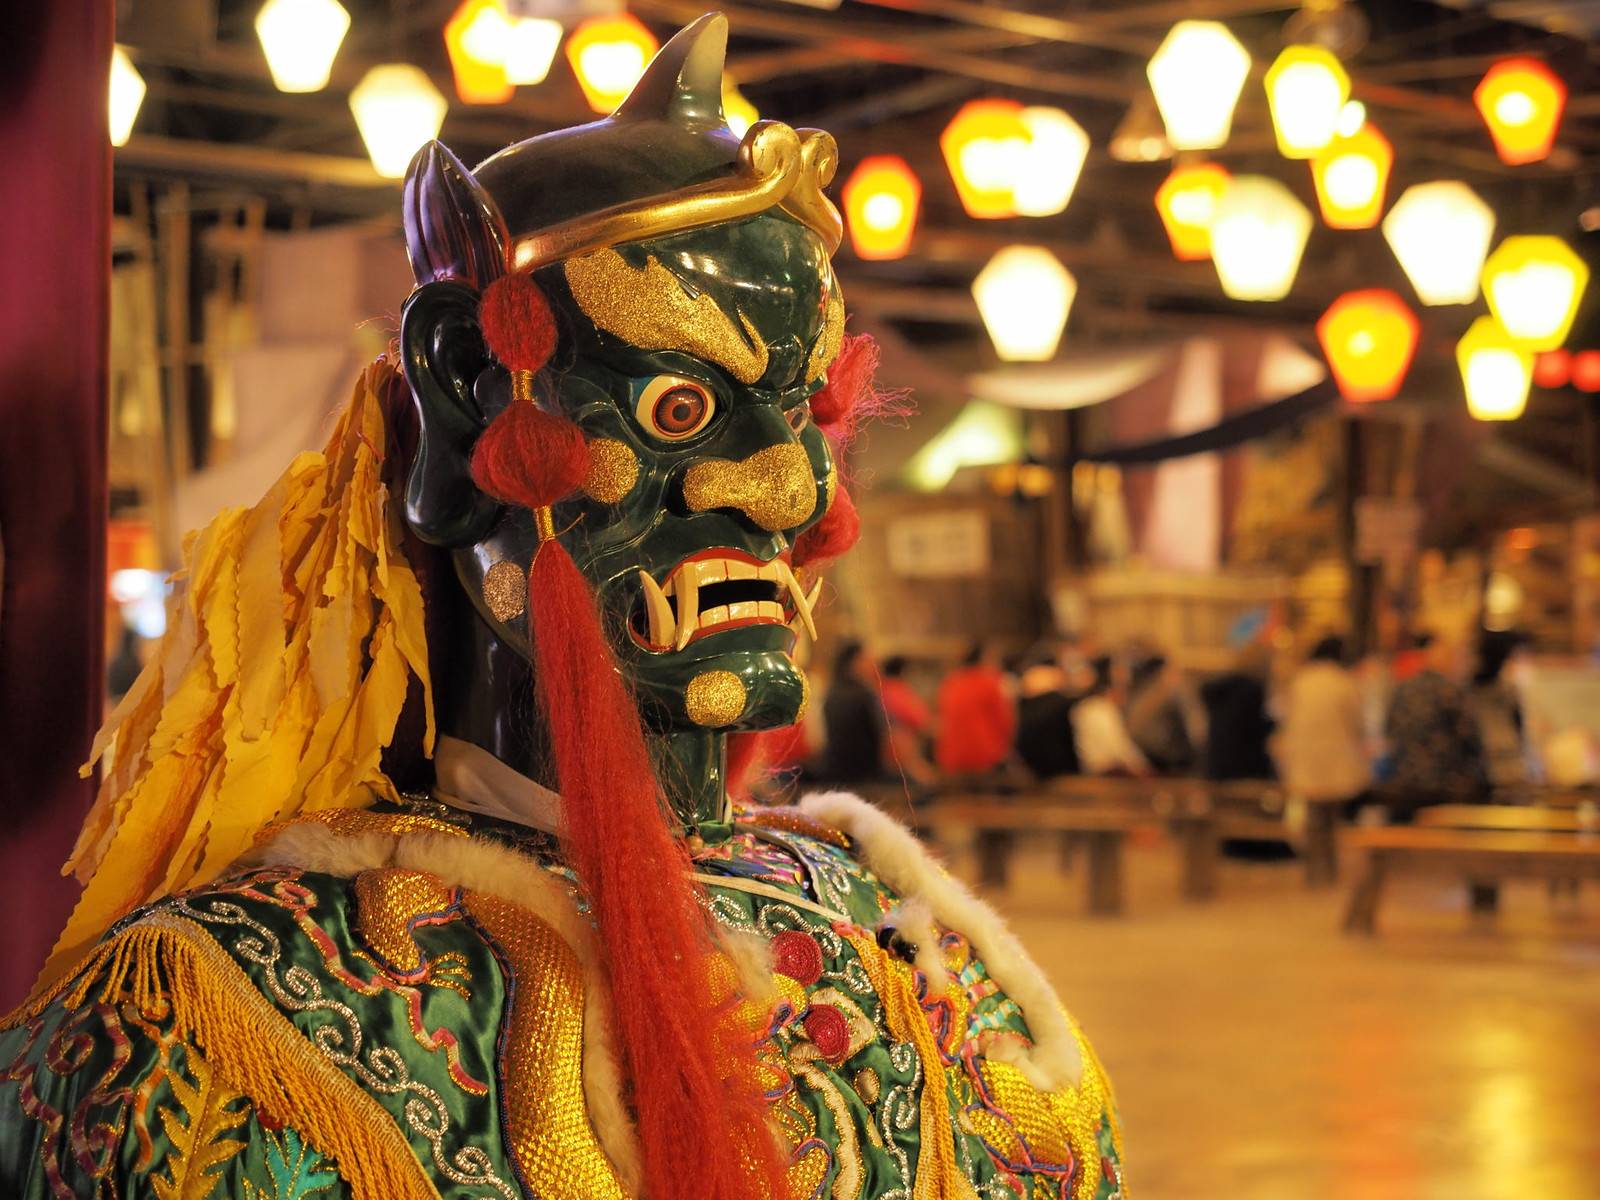 An opera costume in Taiwan Times Village (寶島時代村)